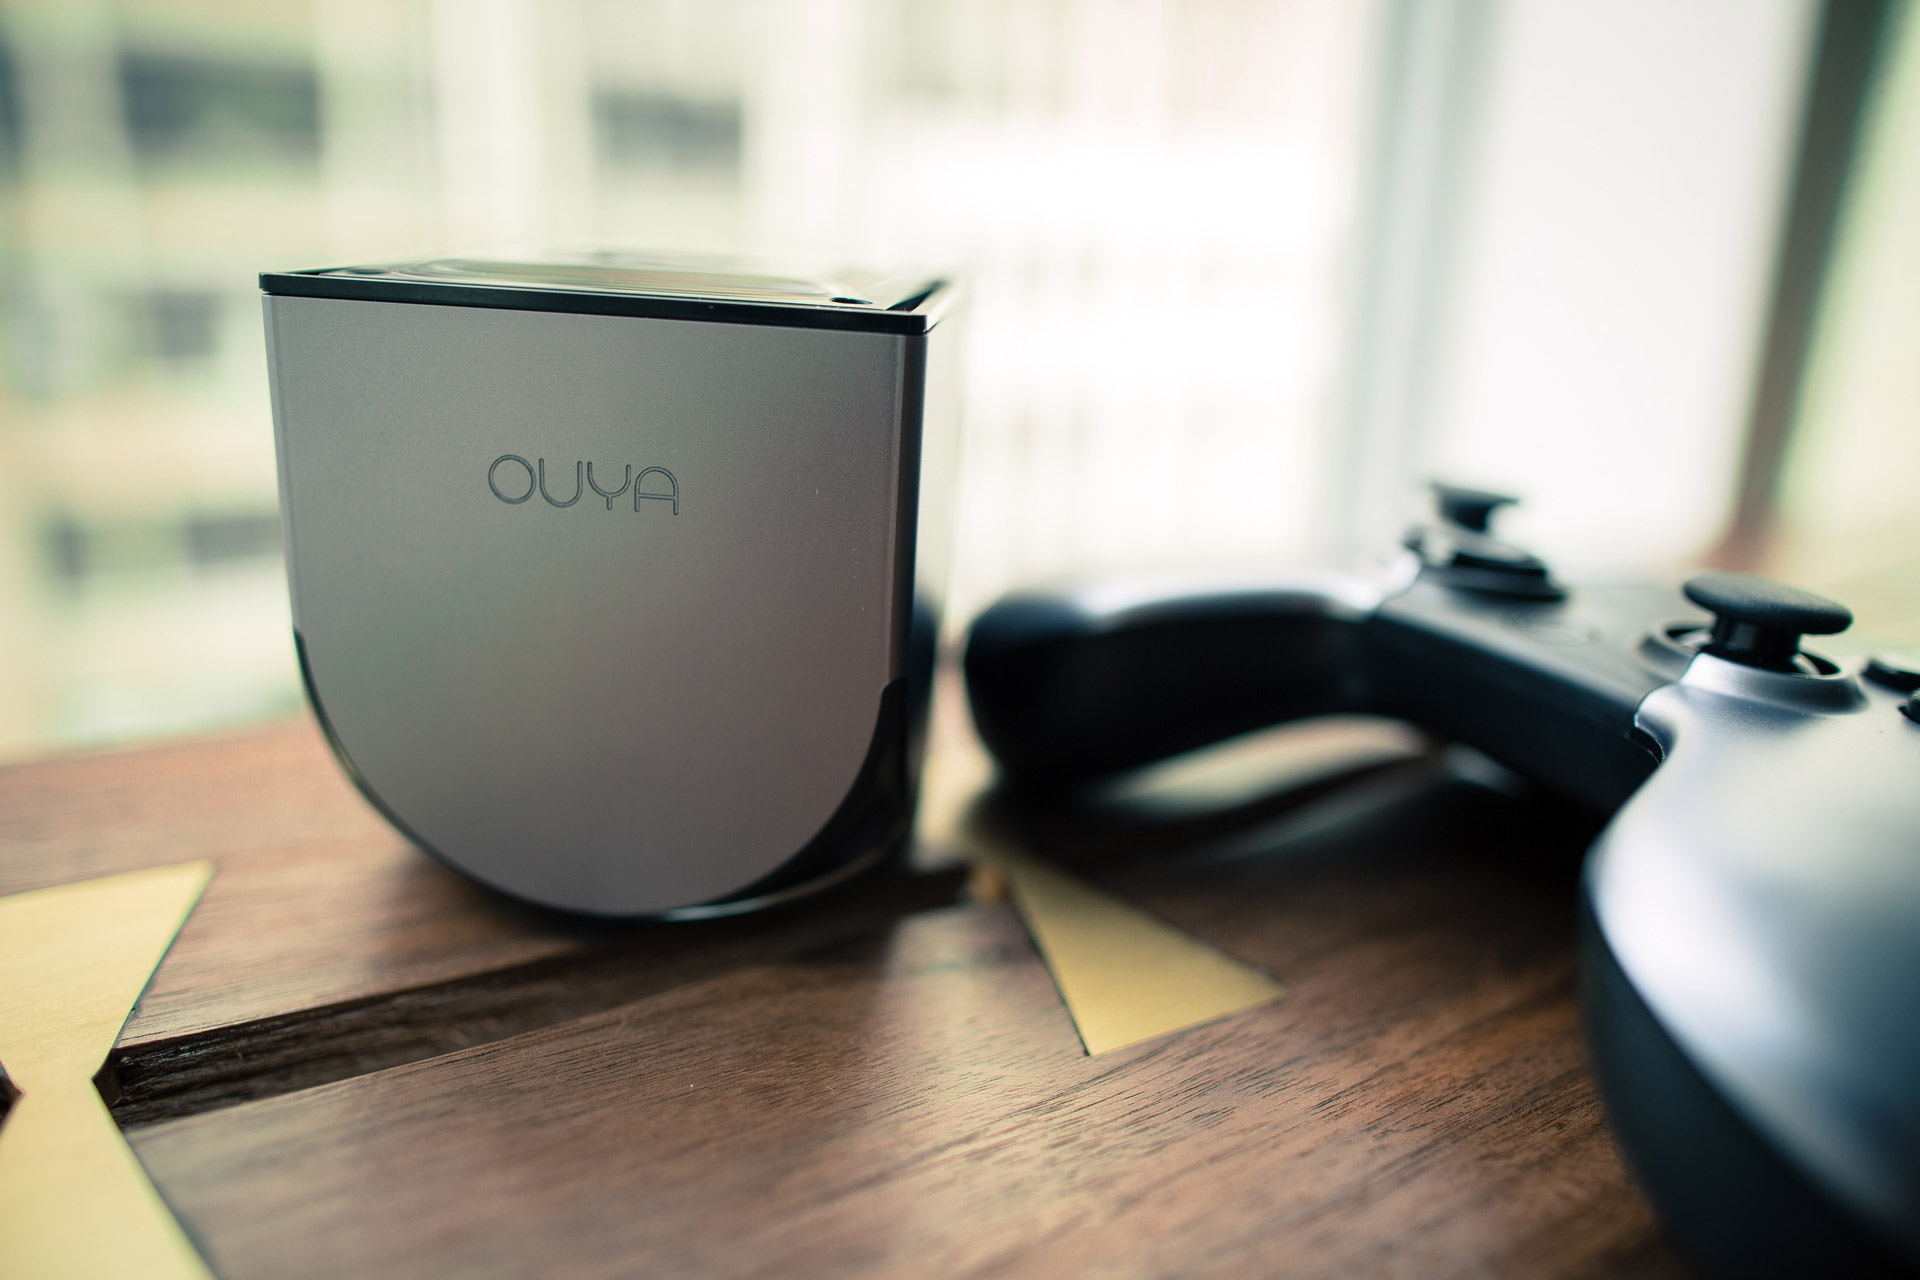 Ouya boasts more than 25,000 registered developers